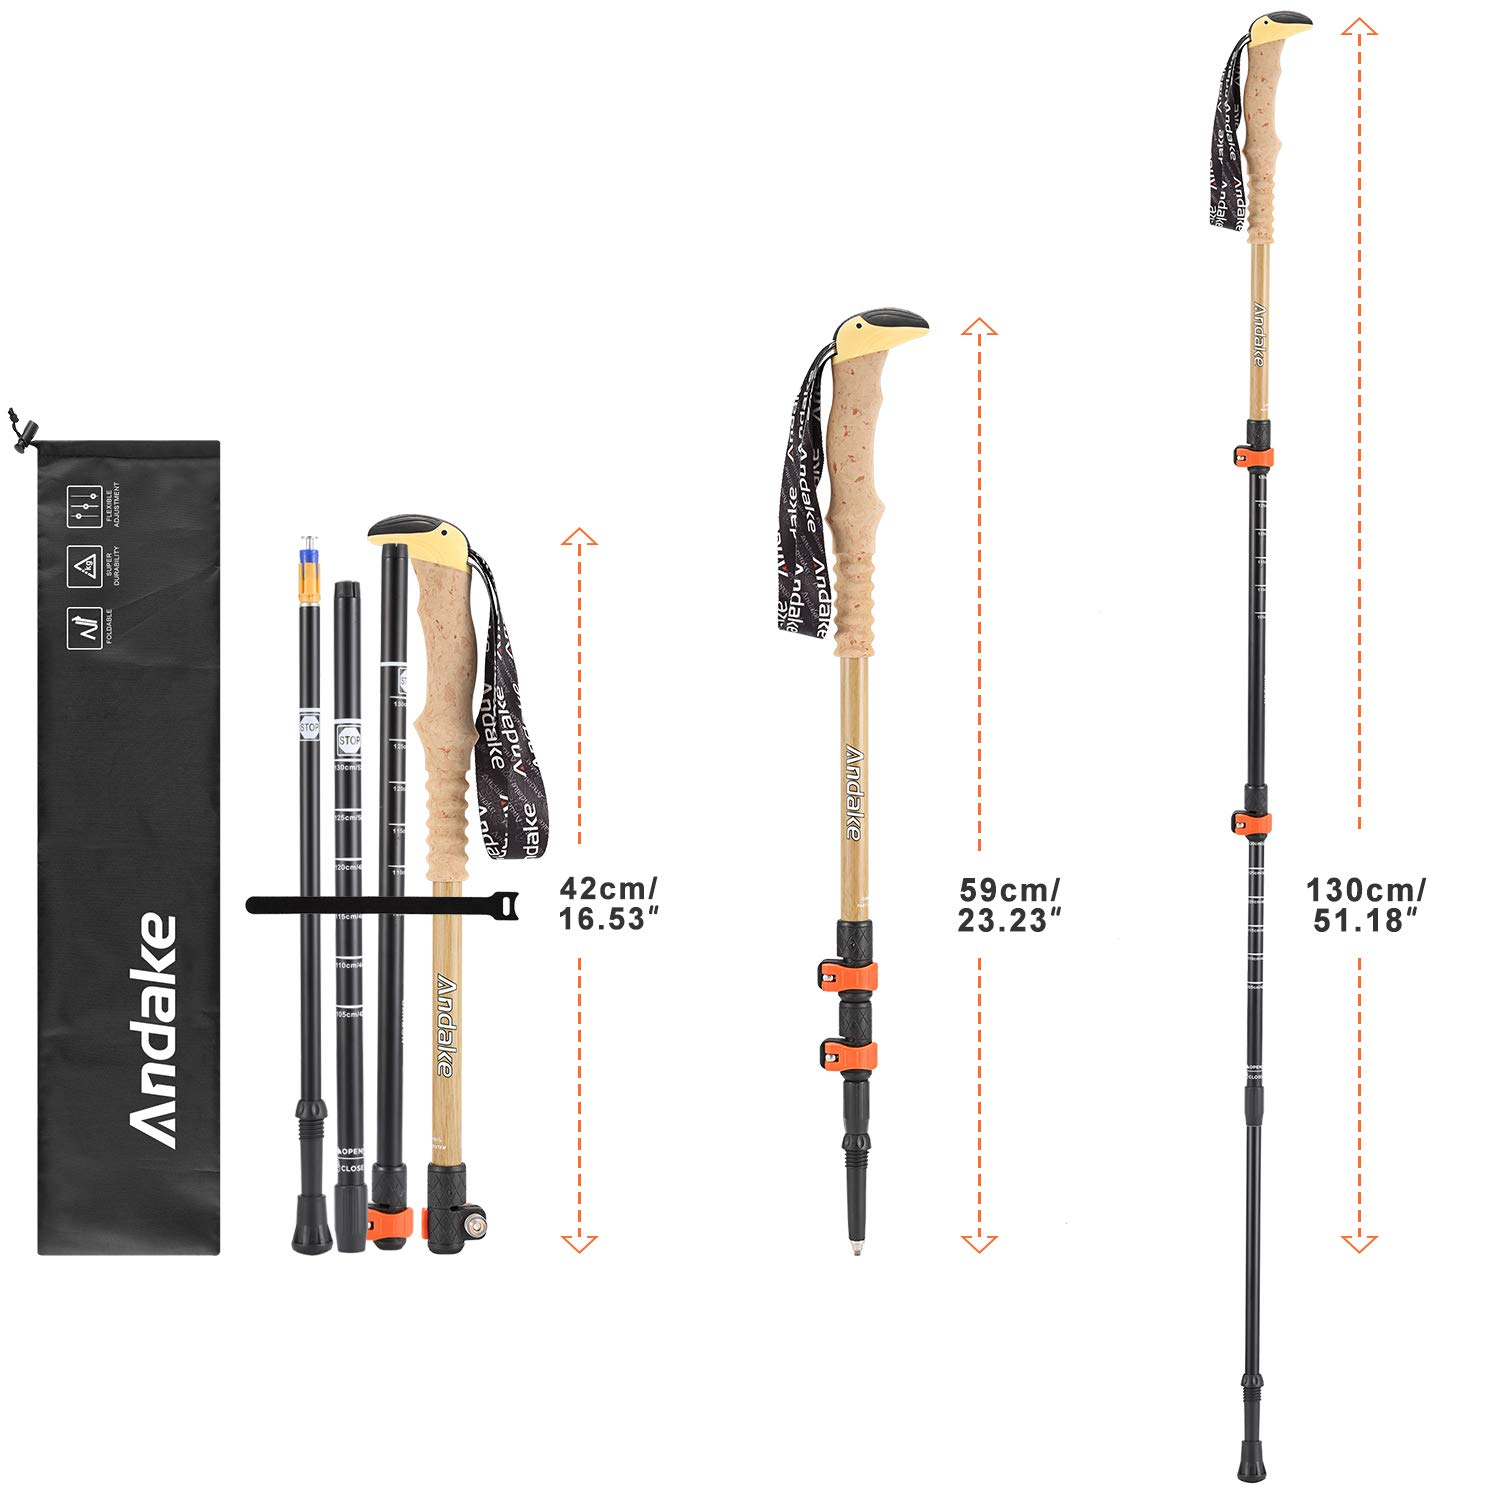 Andake Trekking Poles, Shock-Absorbent, Carbon Fiber Hiking, Walking Running Sticks with High Elasticity EVA Grips, Quick Locks, Lightweight and Collapsible with All Terrain Accessories Carry Bag